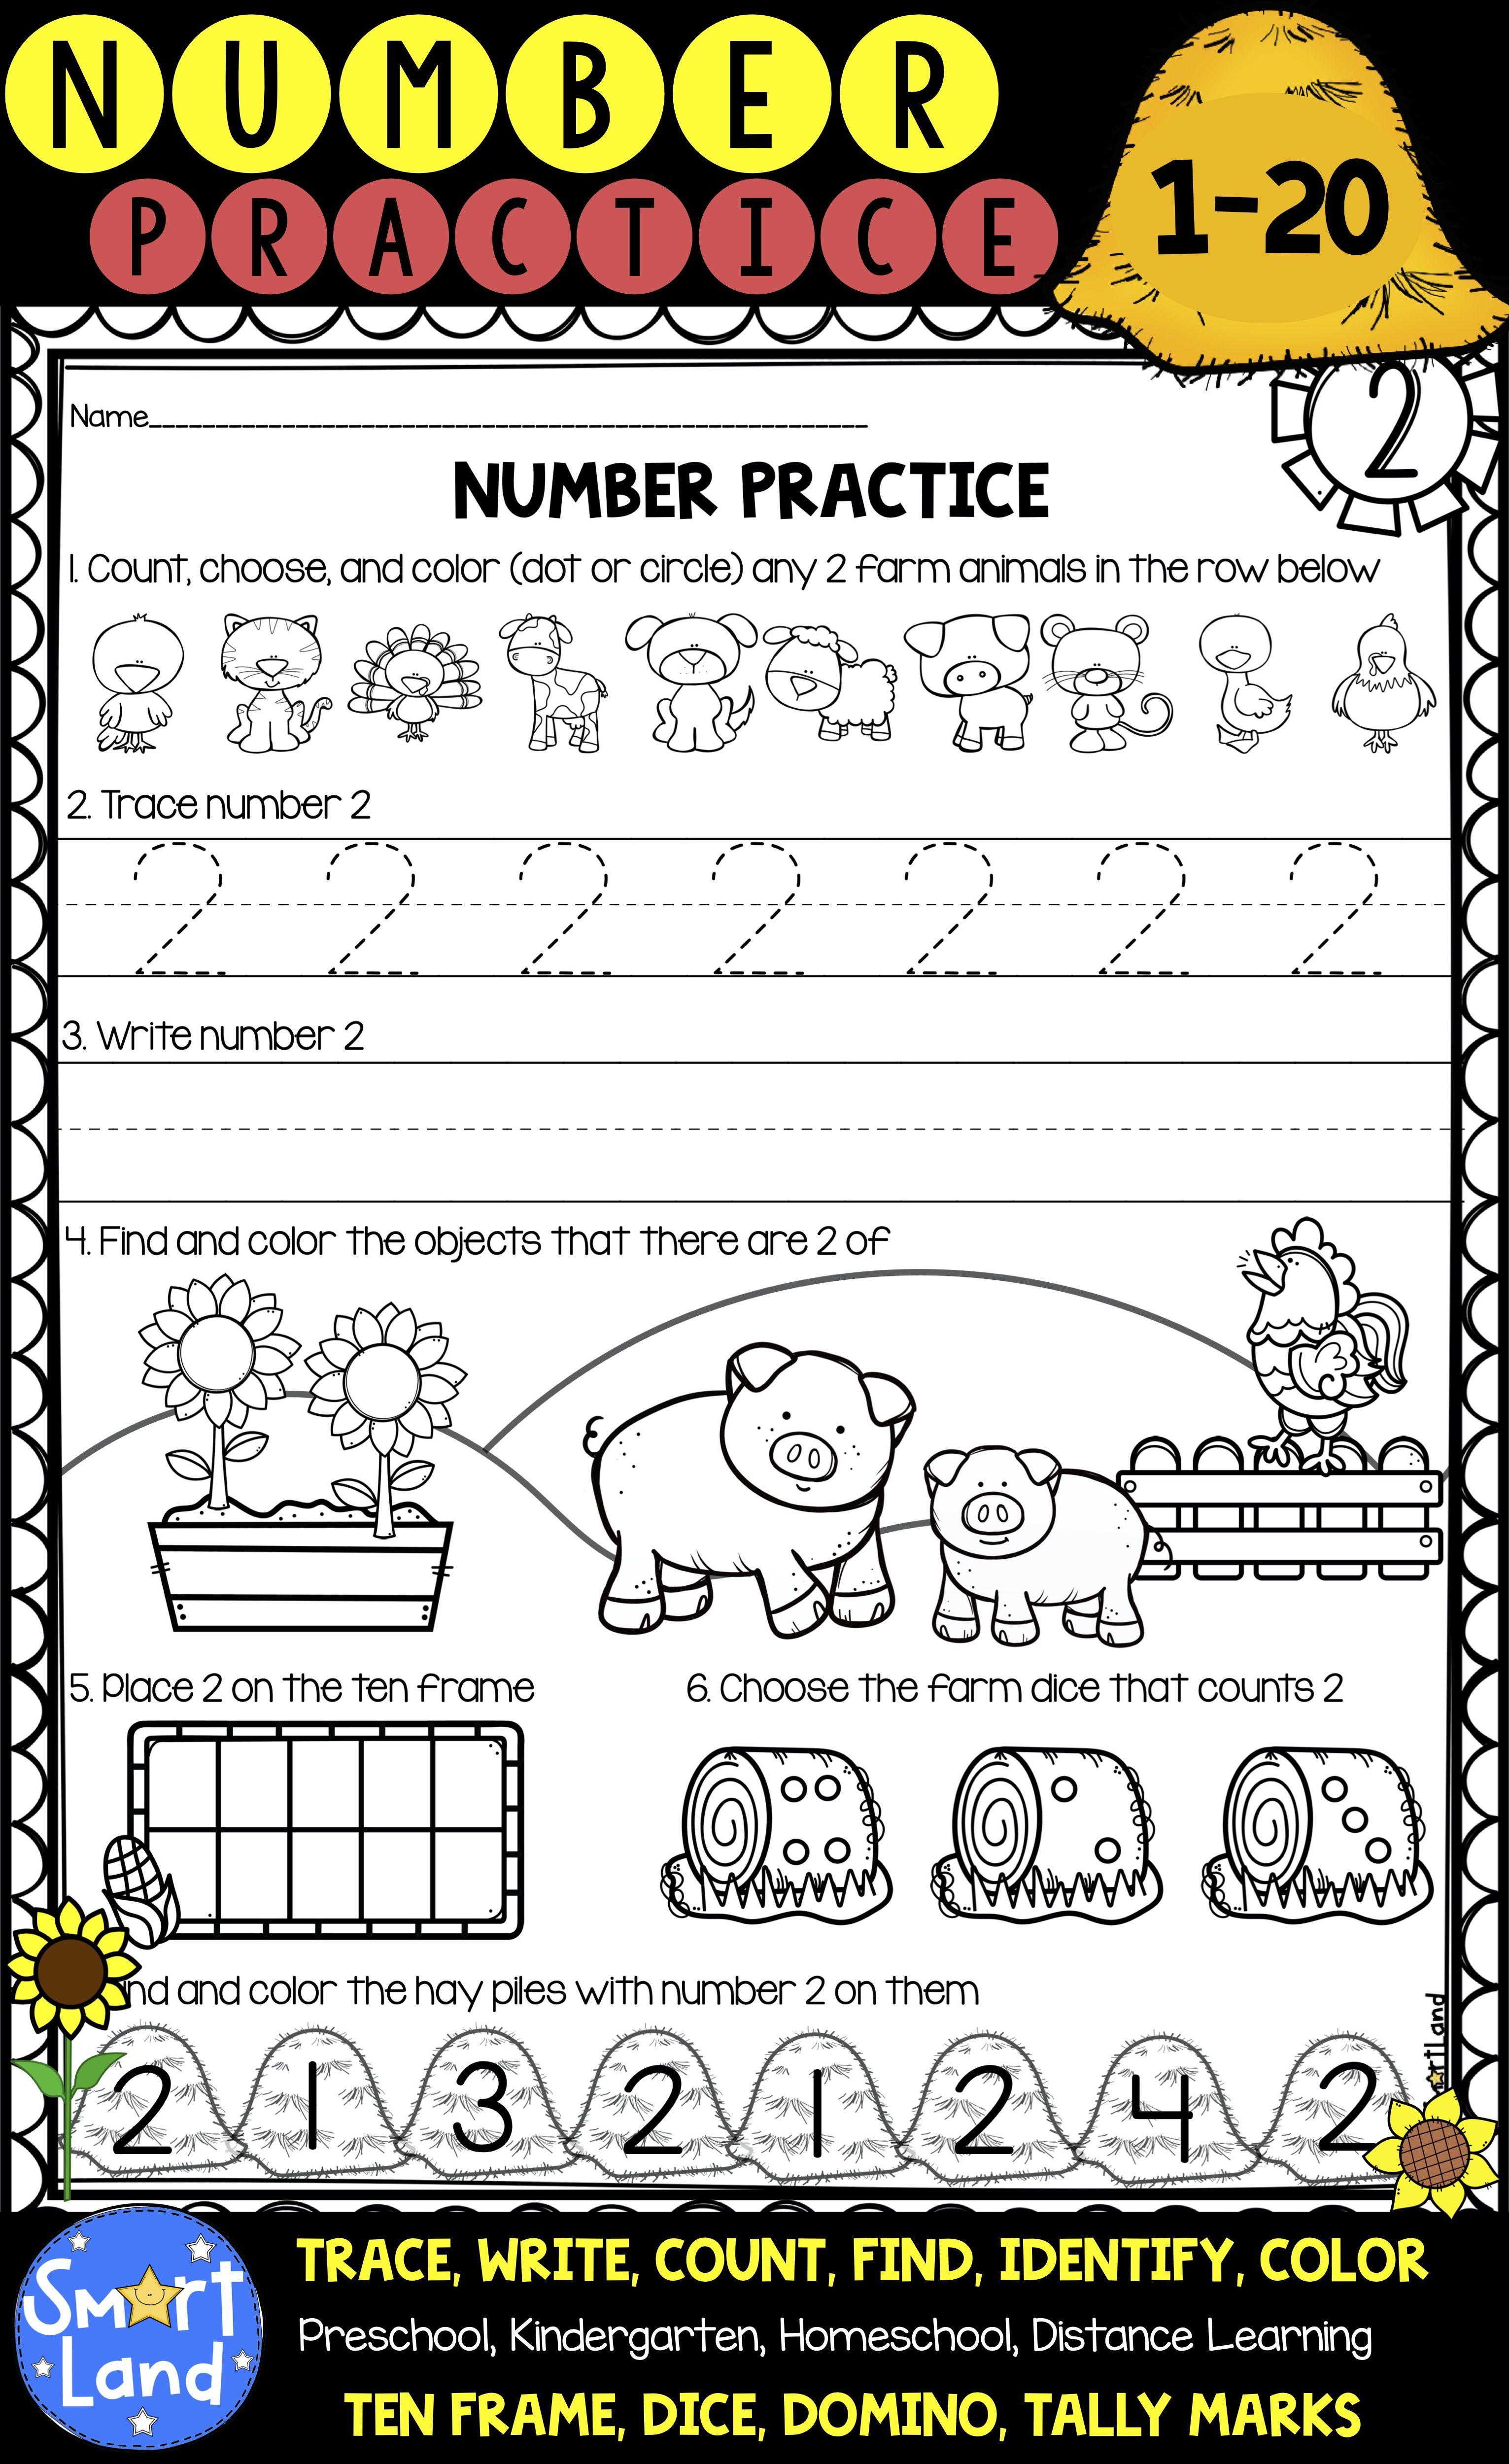 Number Practice 1 20 Handwriting And Counting In